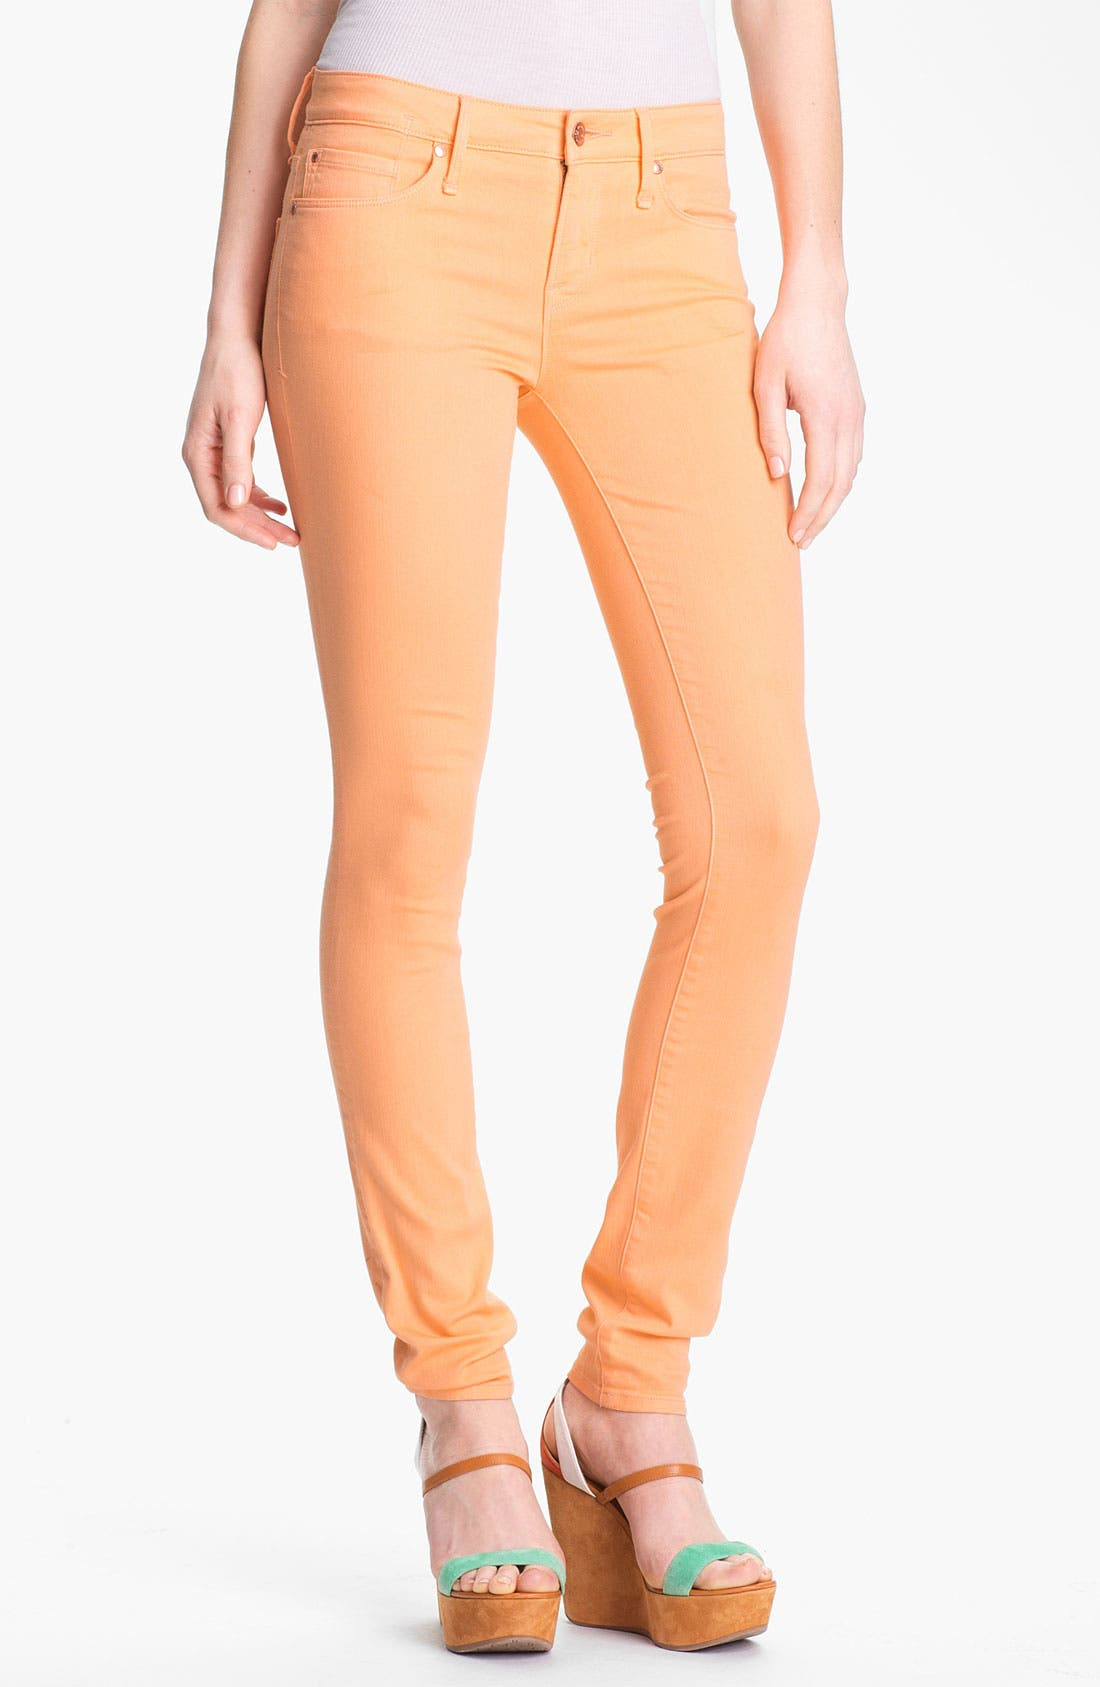 Alternate Image 1 Selected - MARC BY MARC JACOBS 'Gaia' Colored Super Skinny Stretch Jeans (Apricot)